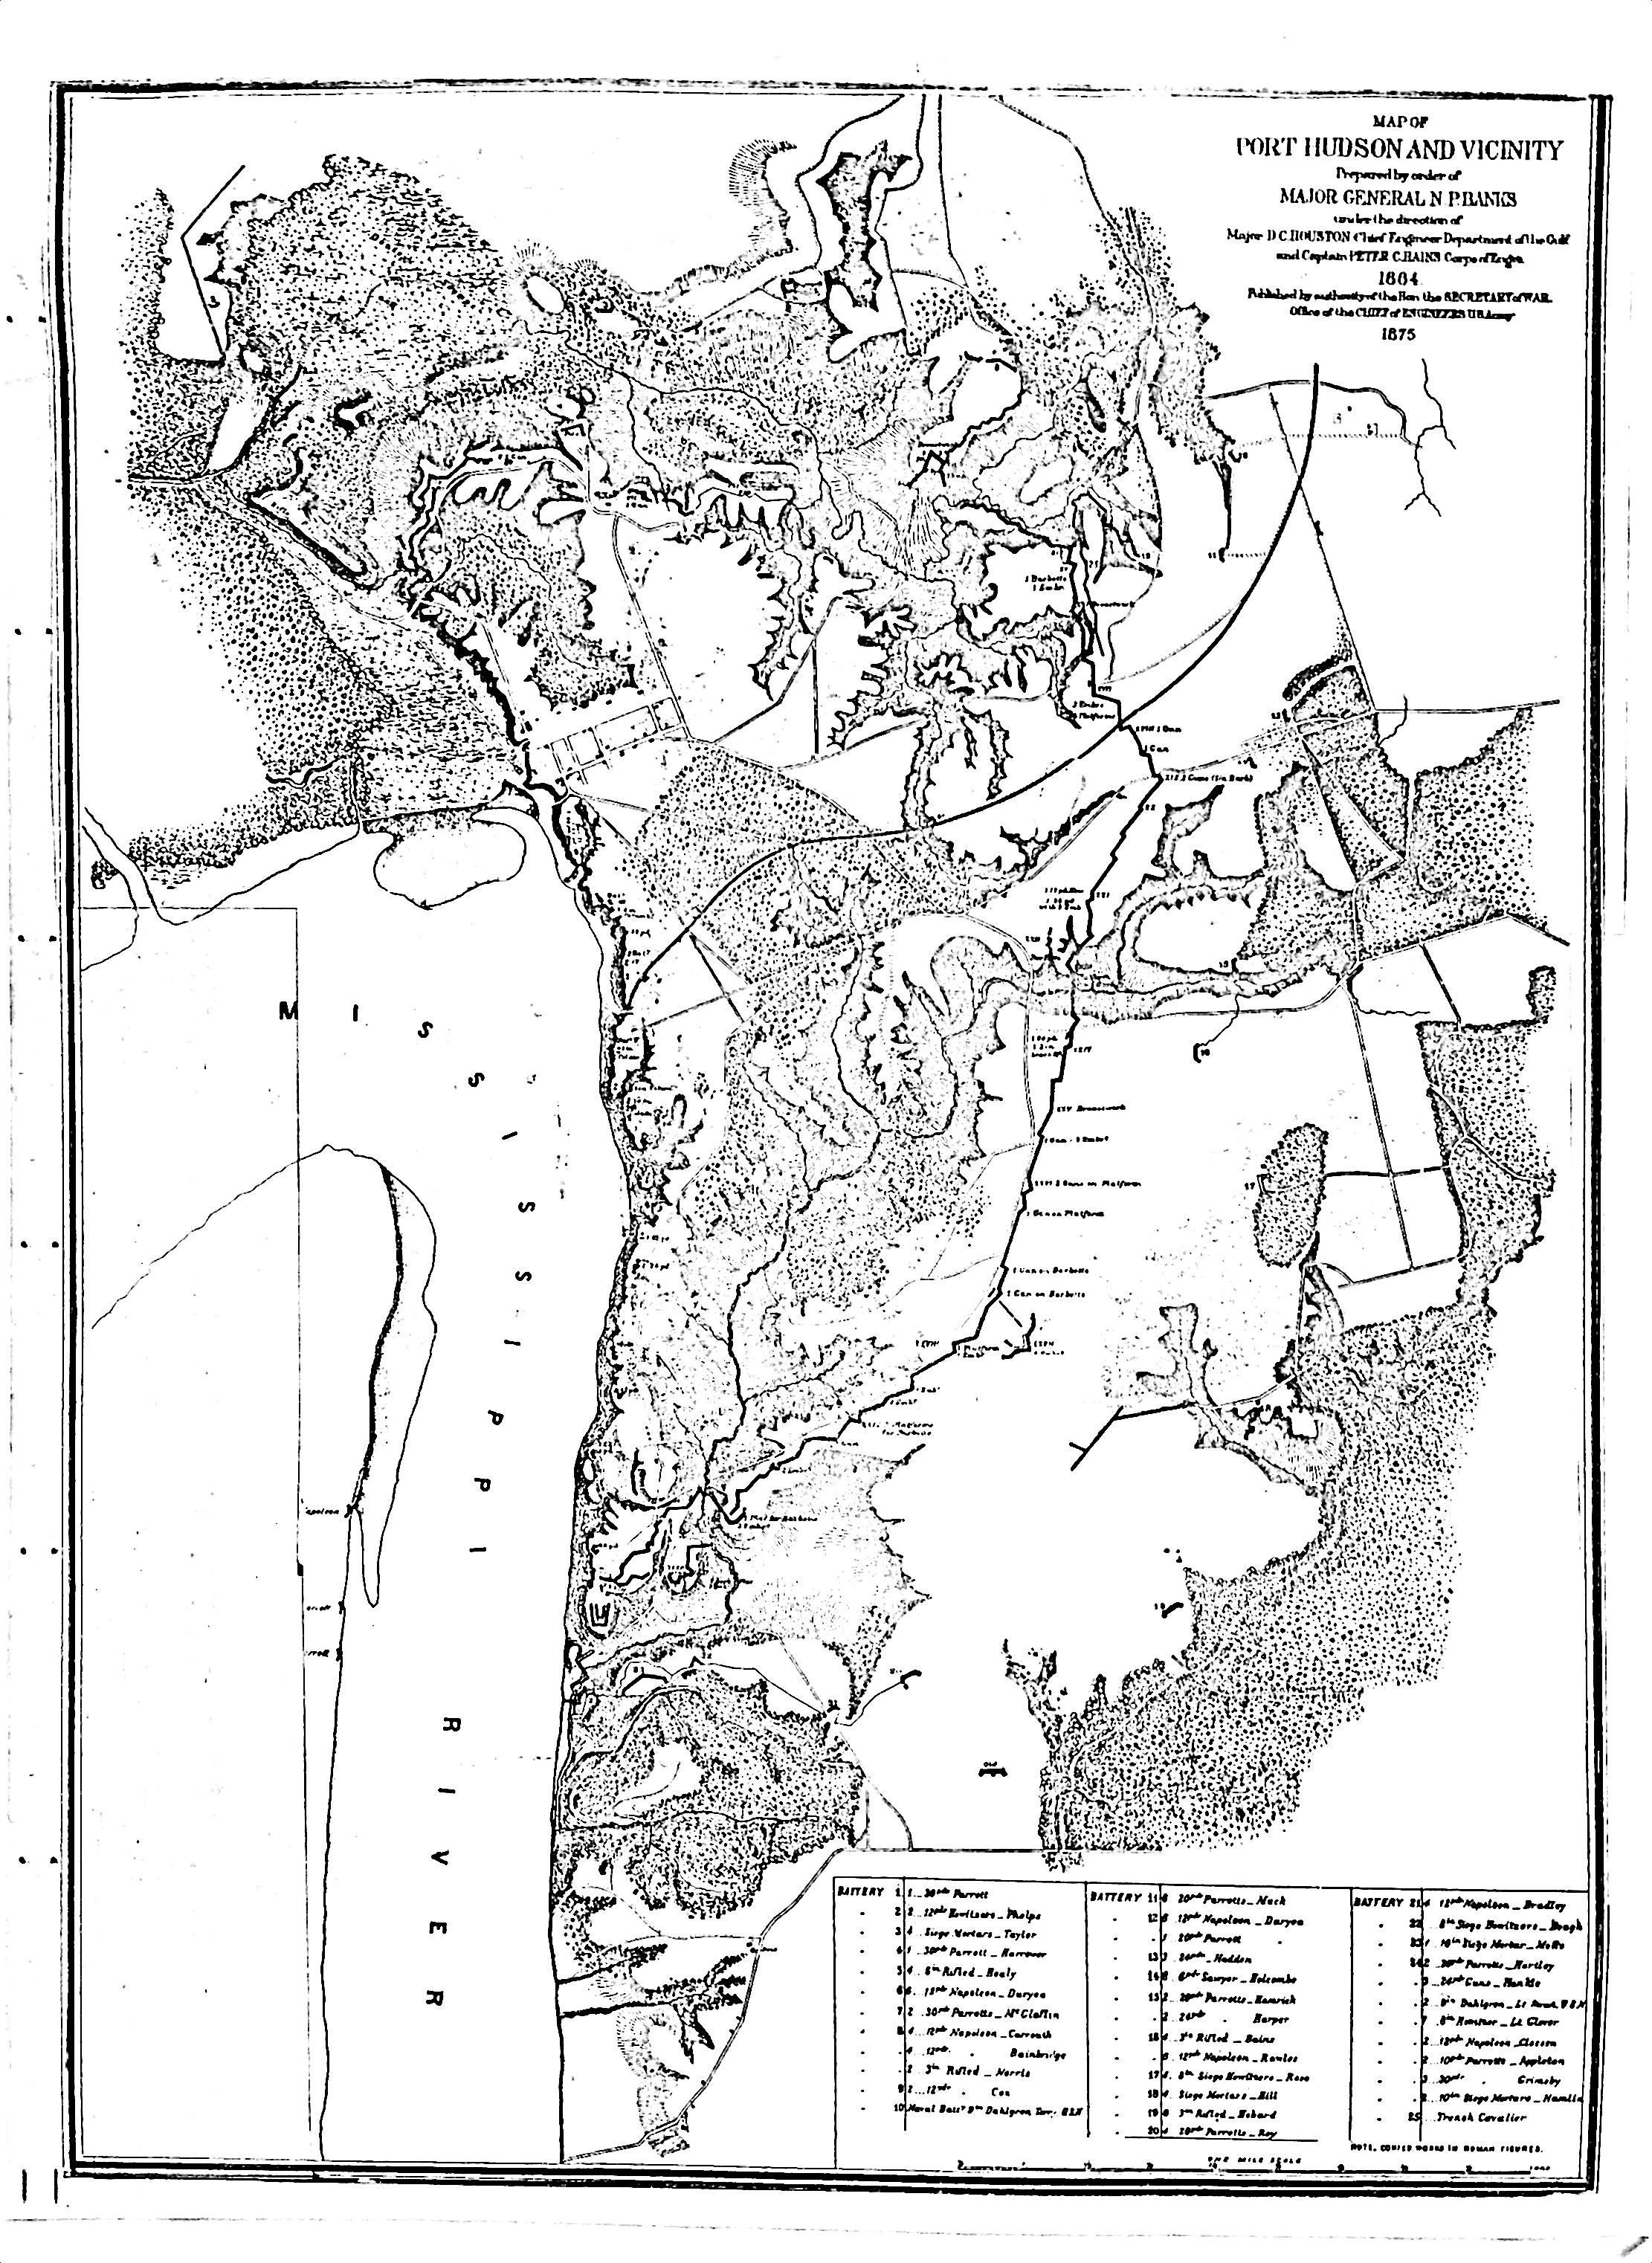 Port Hudson and Vicinity 1864-1